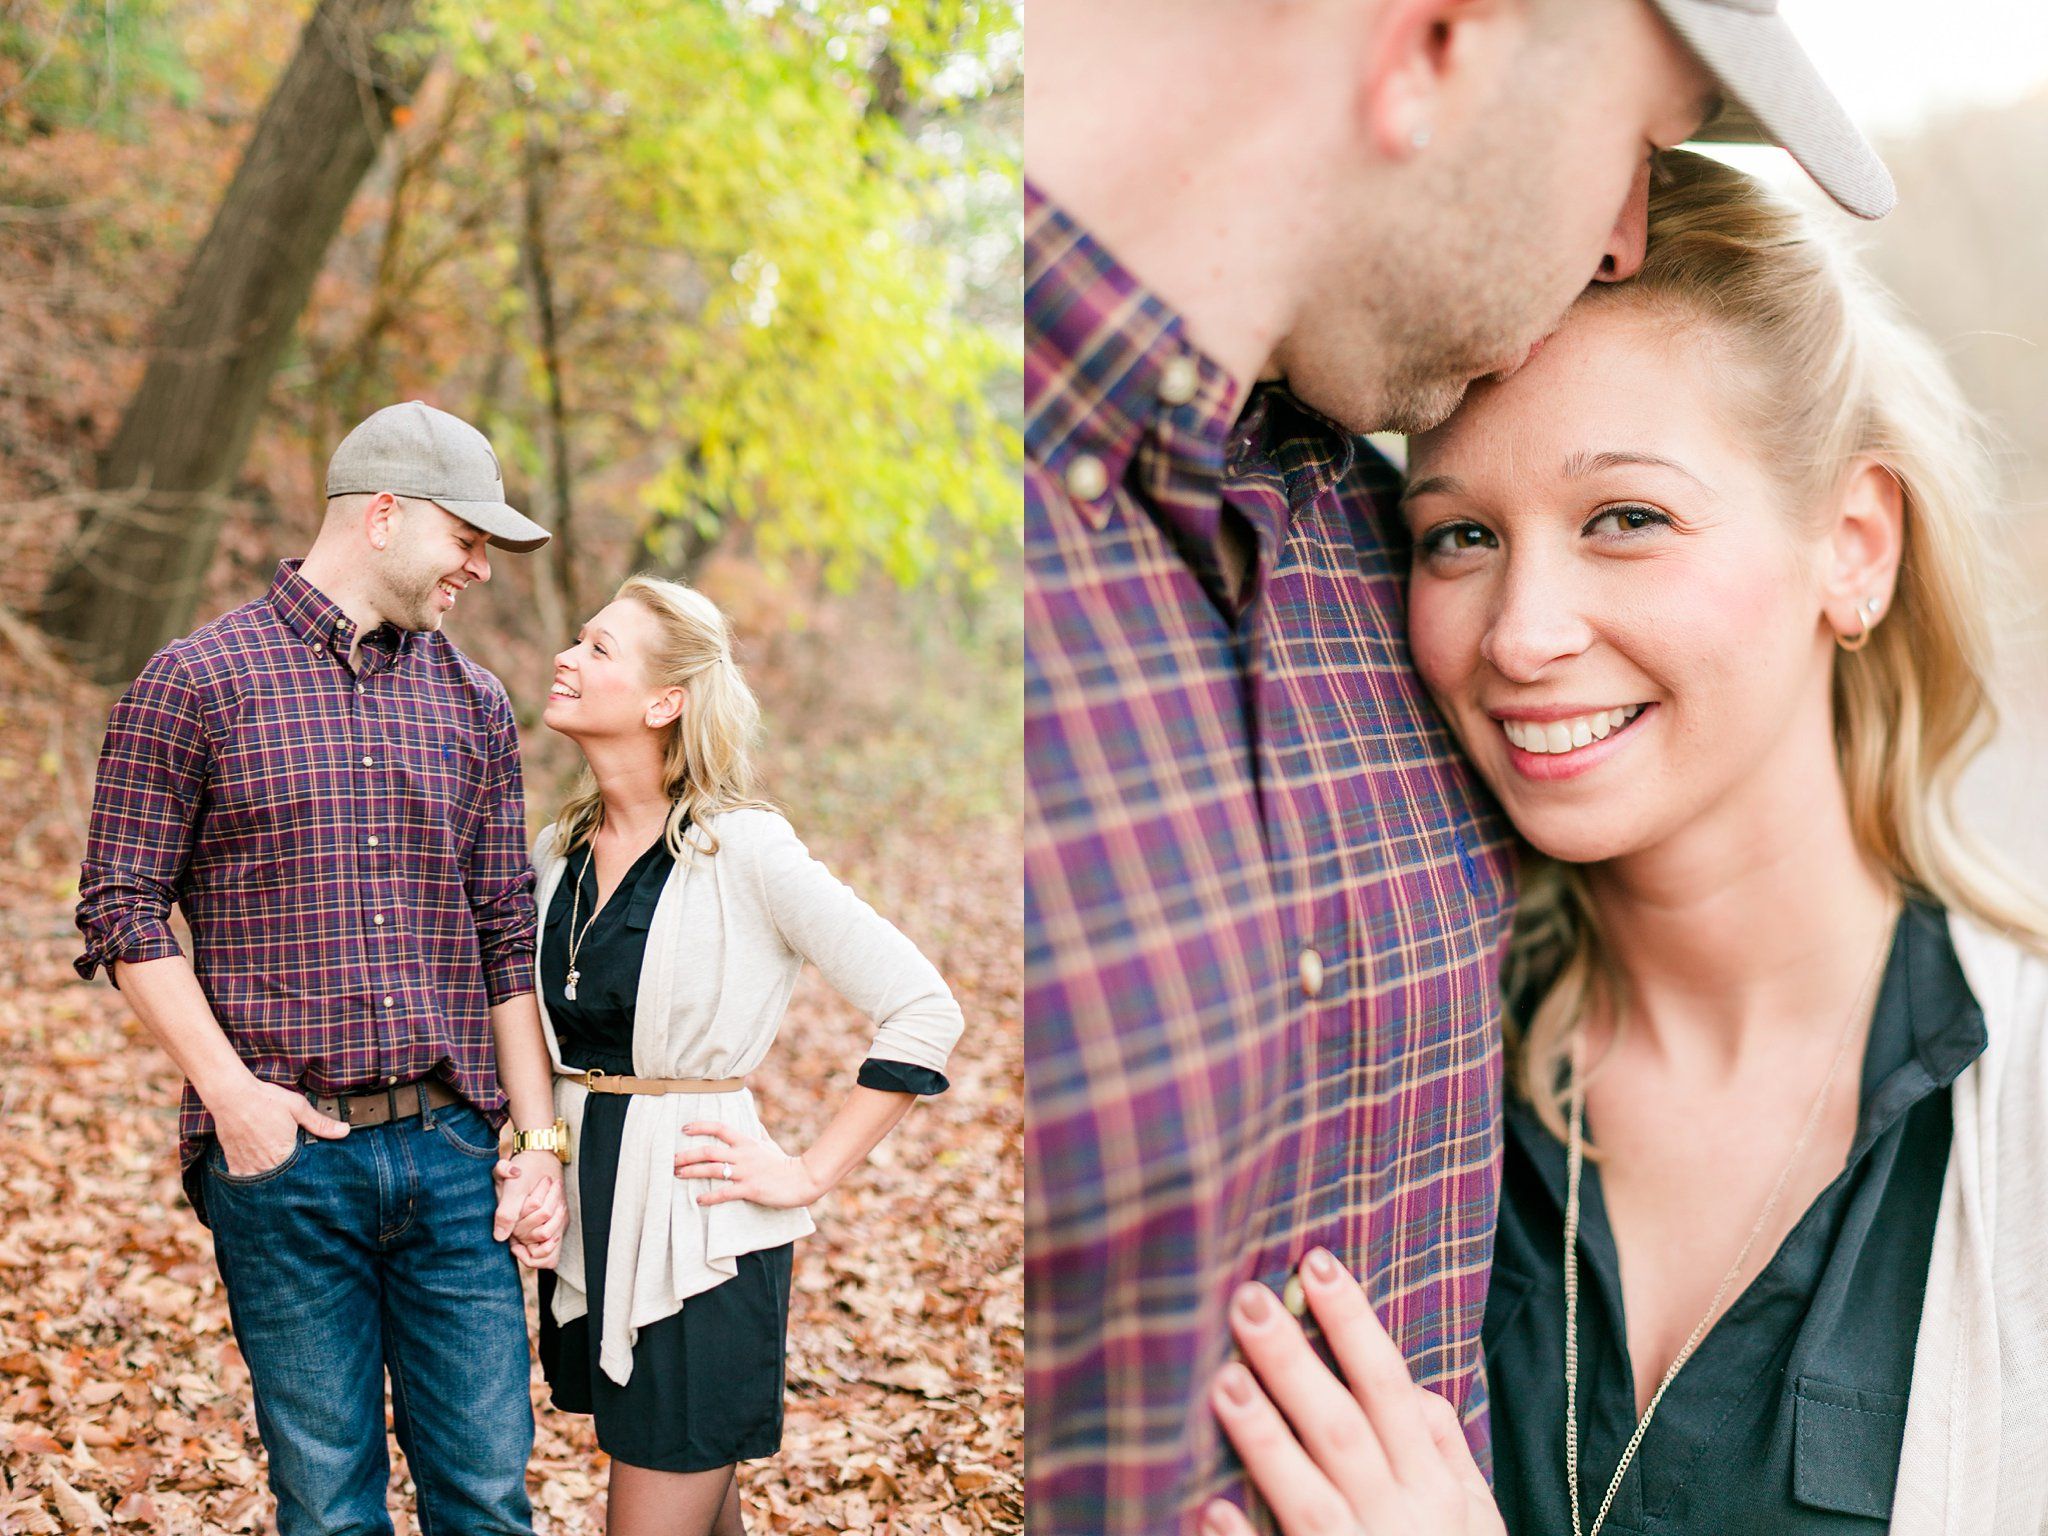 Rock Creek Park Engagement Photos DC Wedding Photographer Megan Kelsey Photography Katie & Conor-135.jpg